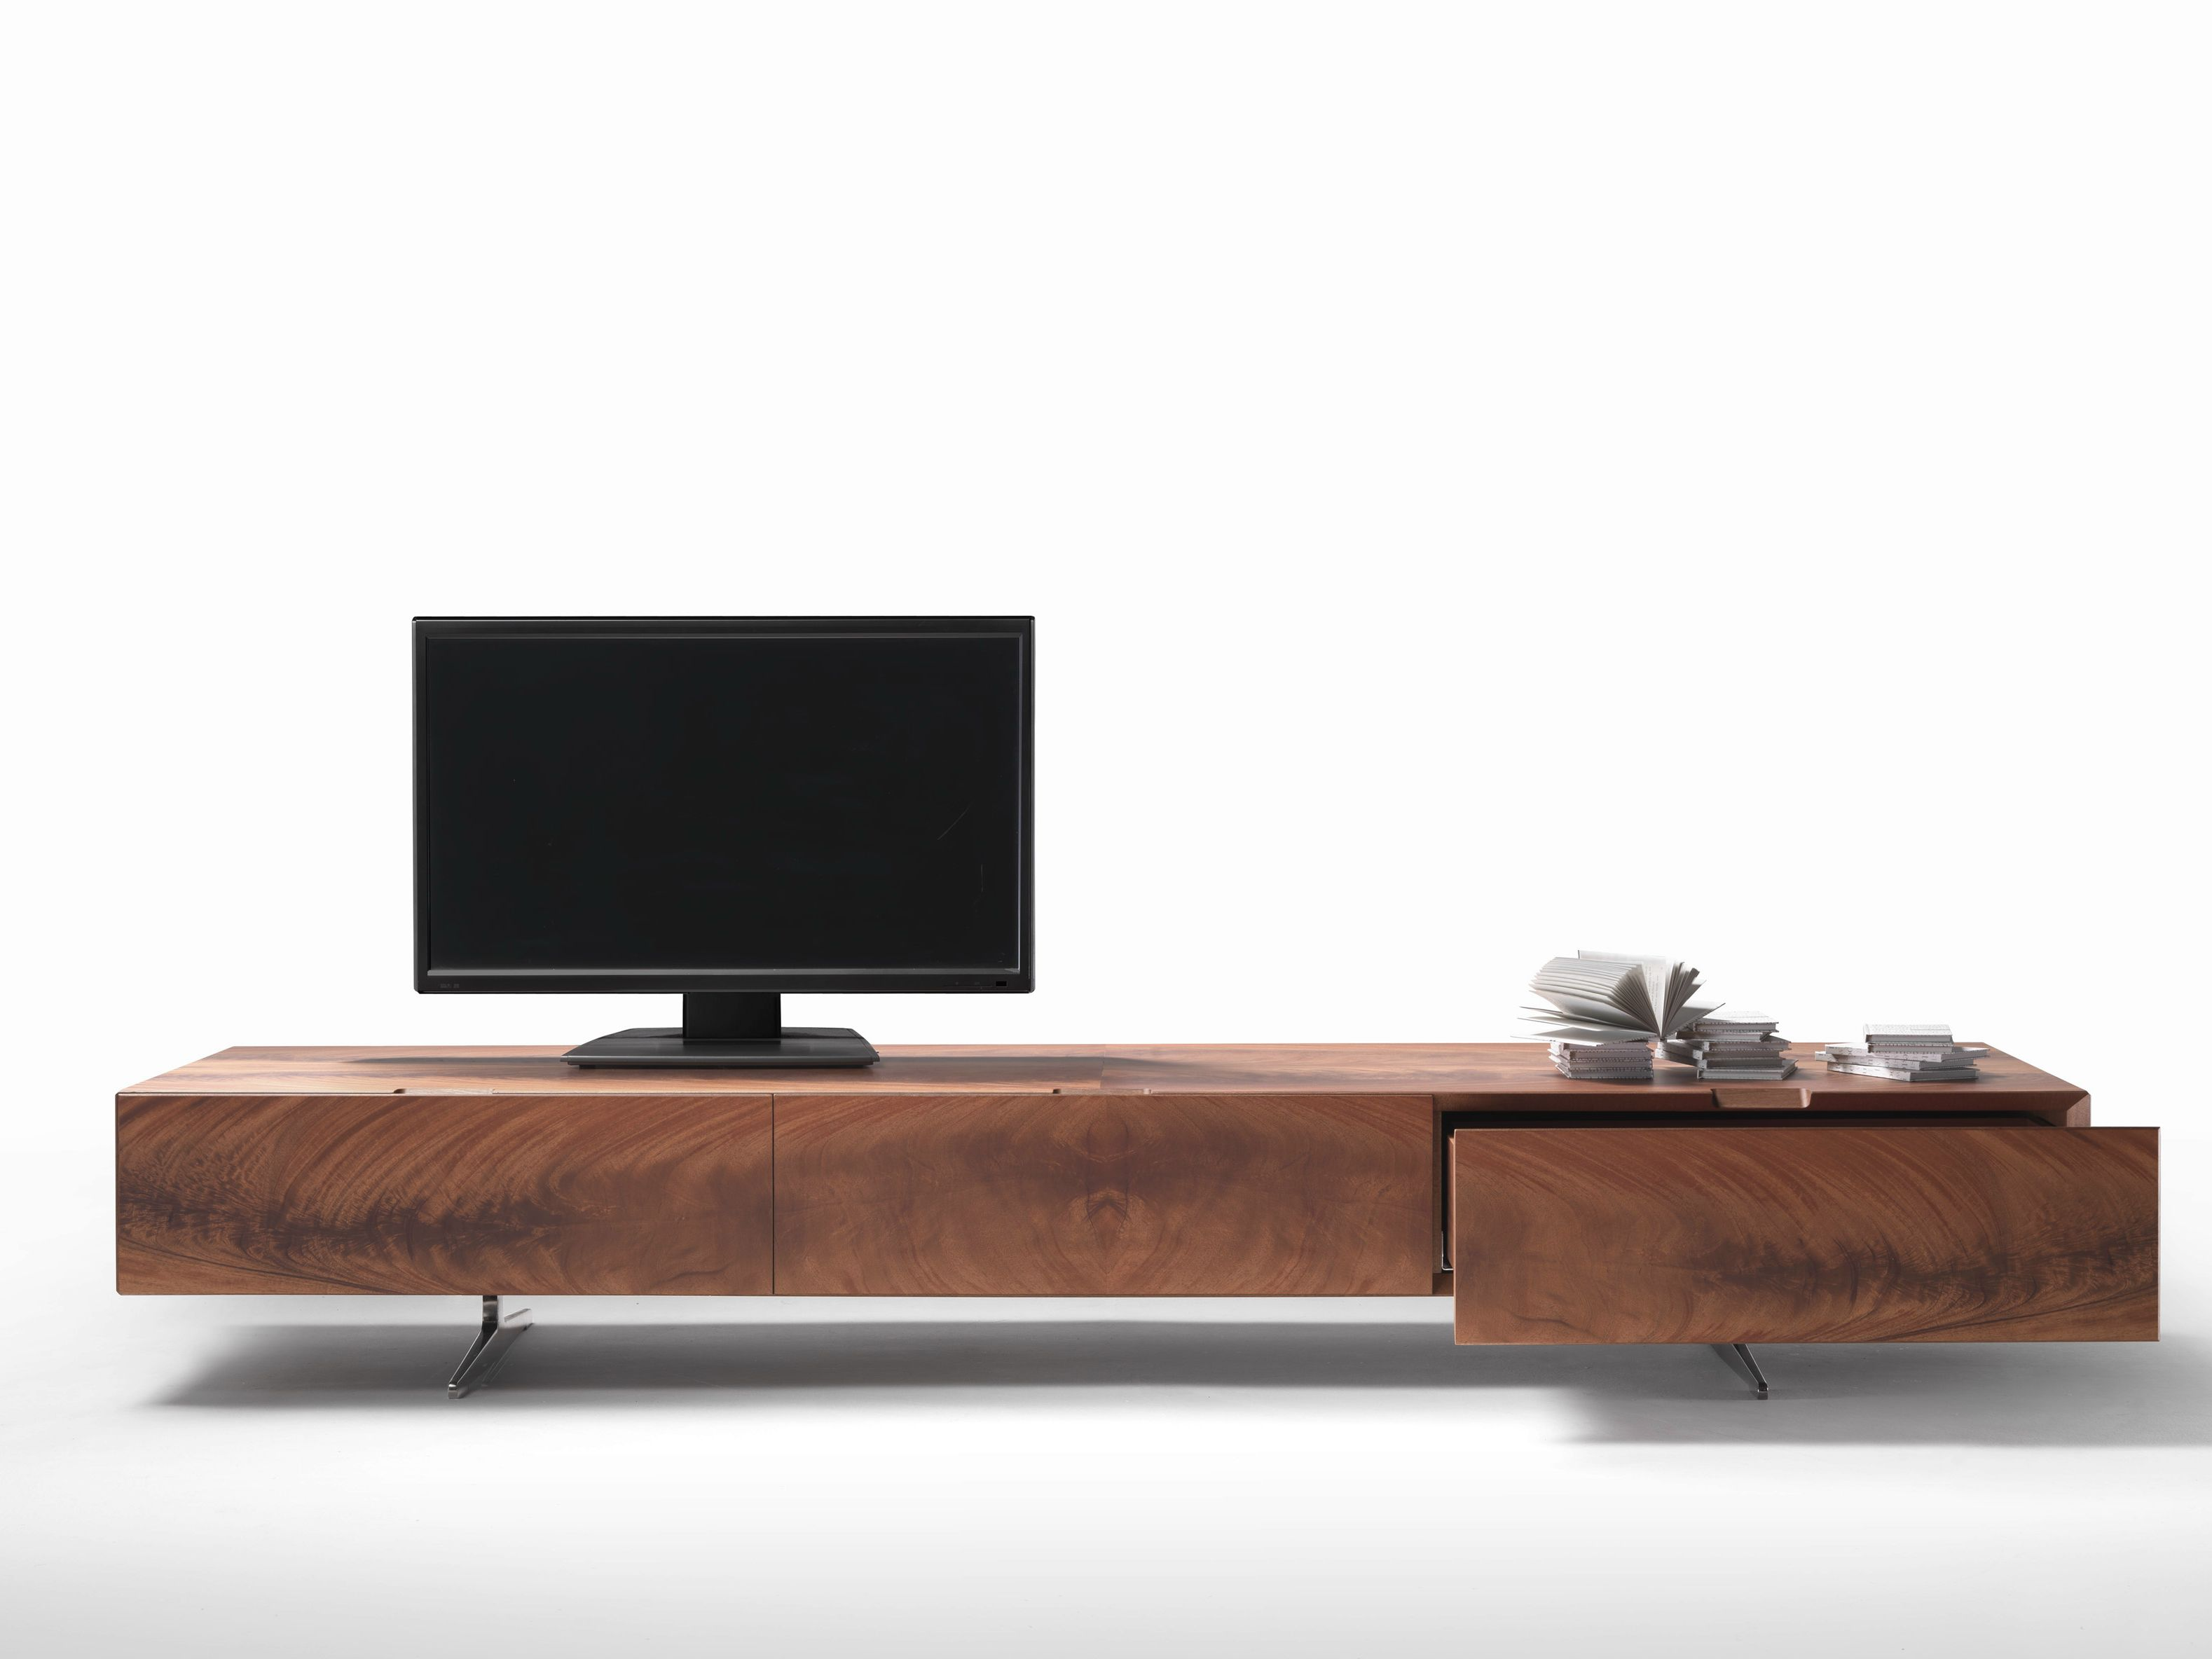 Tv sideboard holz  TV-Lowboard aus Holz Kollektion Piuma by FLEXFORM | Design Antonio ...